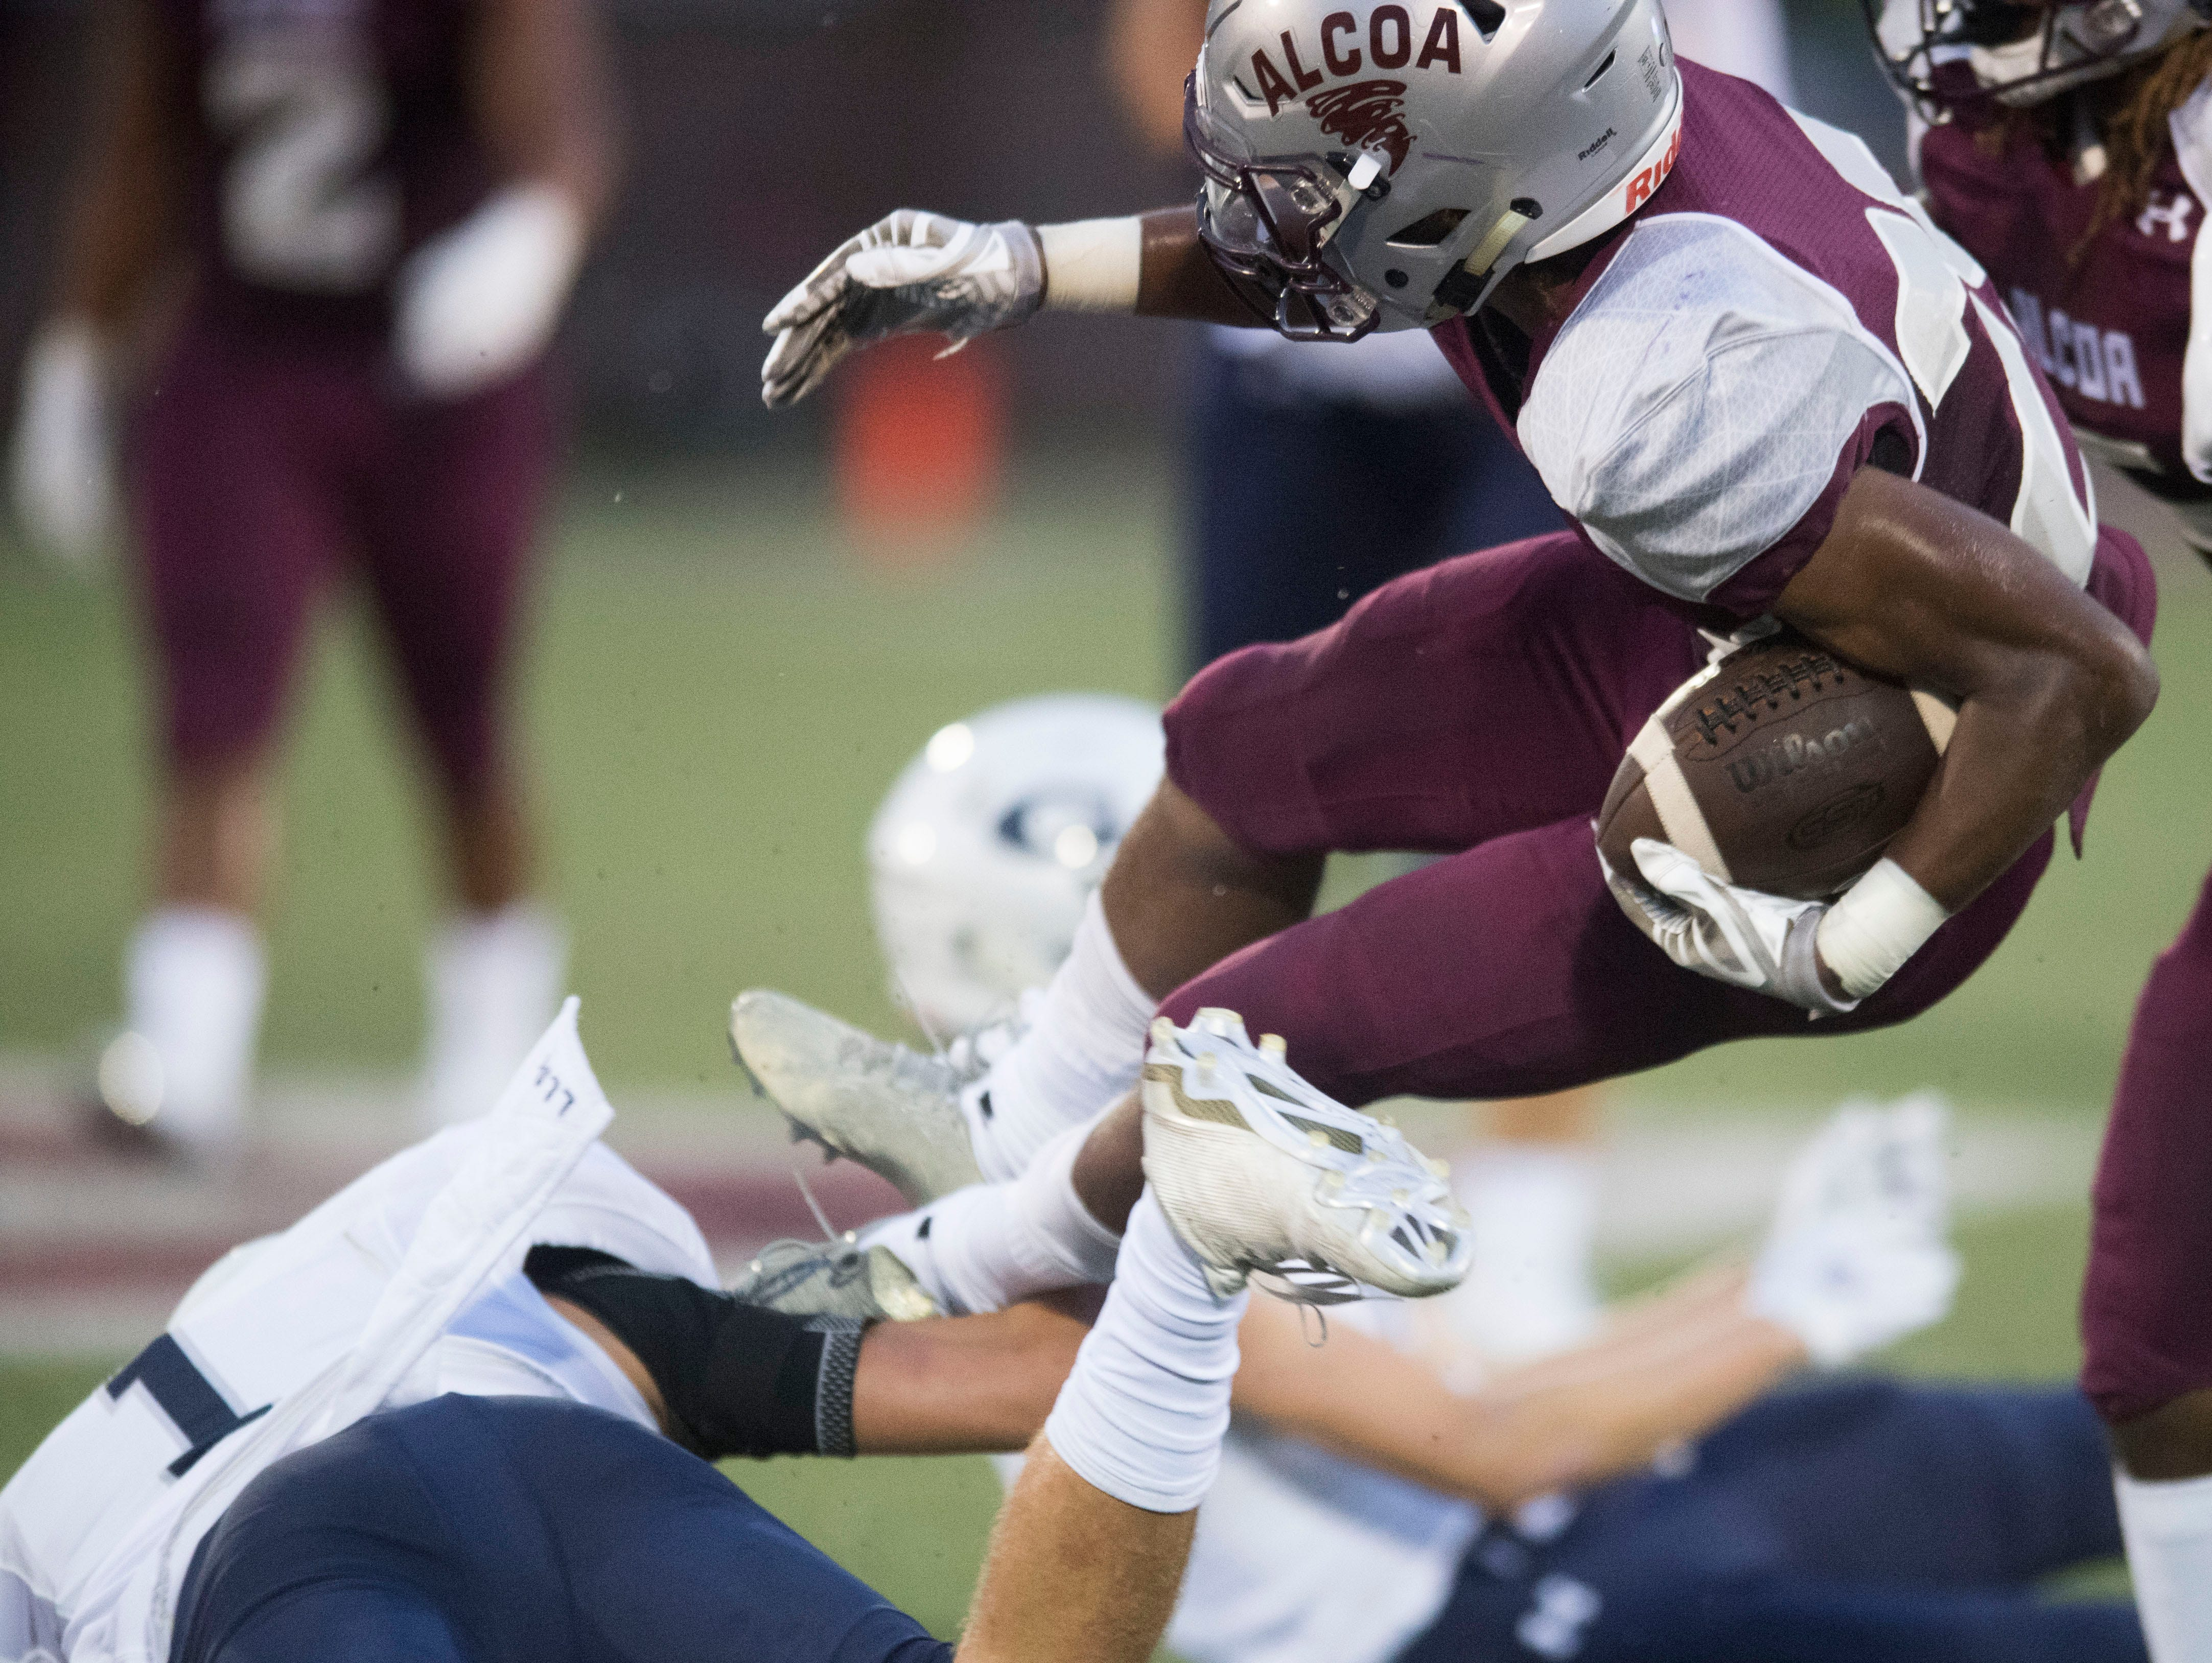 Alcoa's J.R. Jones (28) is tripped up by Grace Christian Academy's Michael Feiden (1) during the football game at Alcoa on Thursday, August 16, 2018.